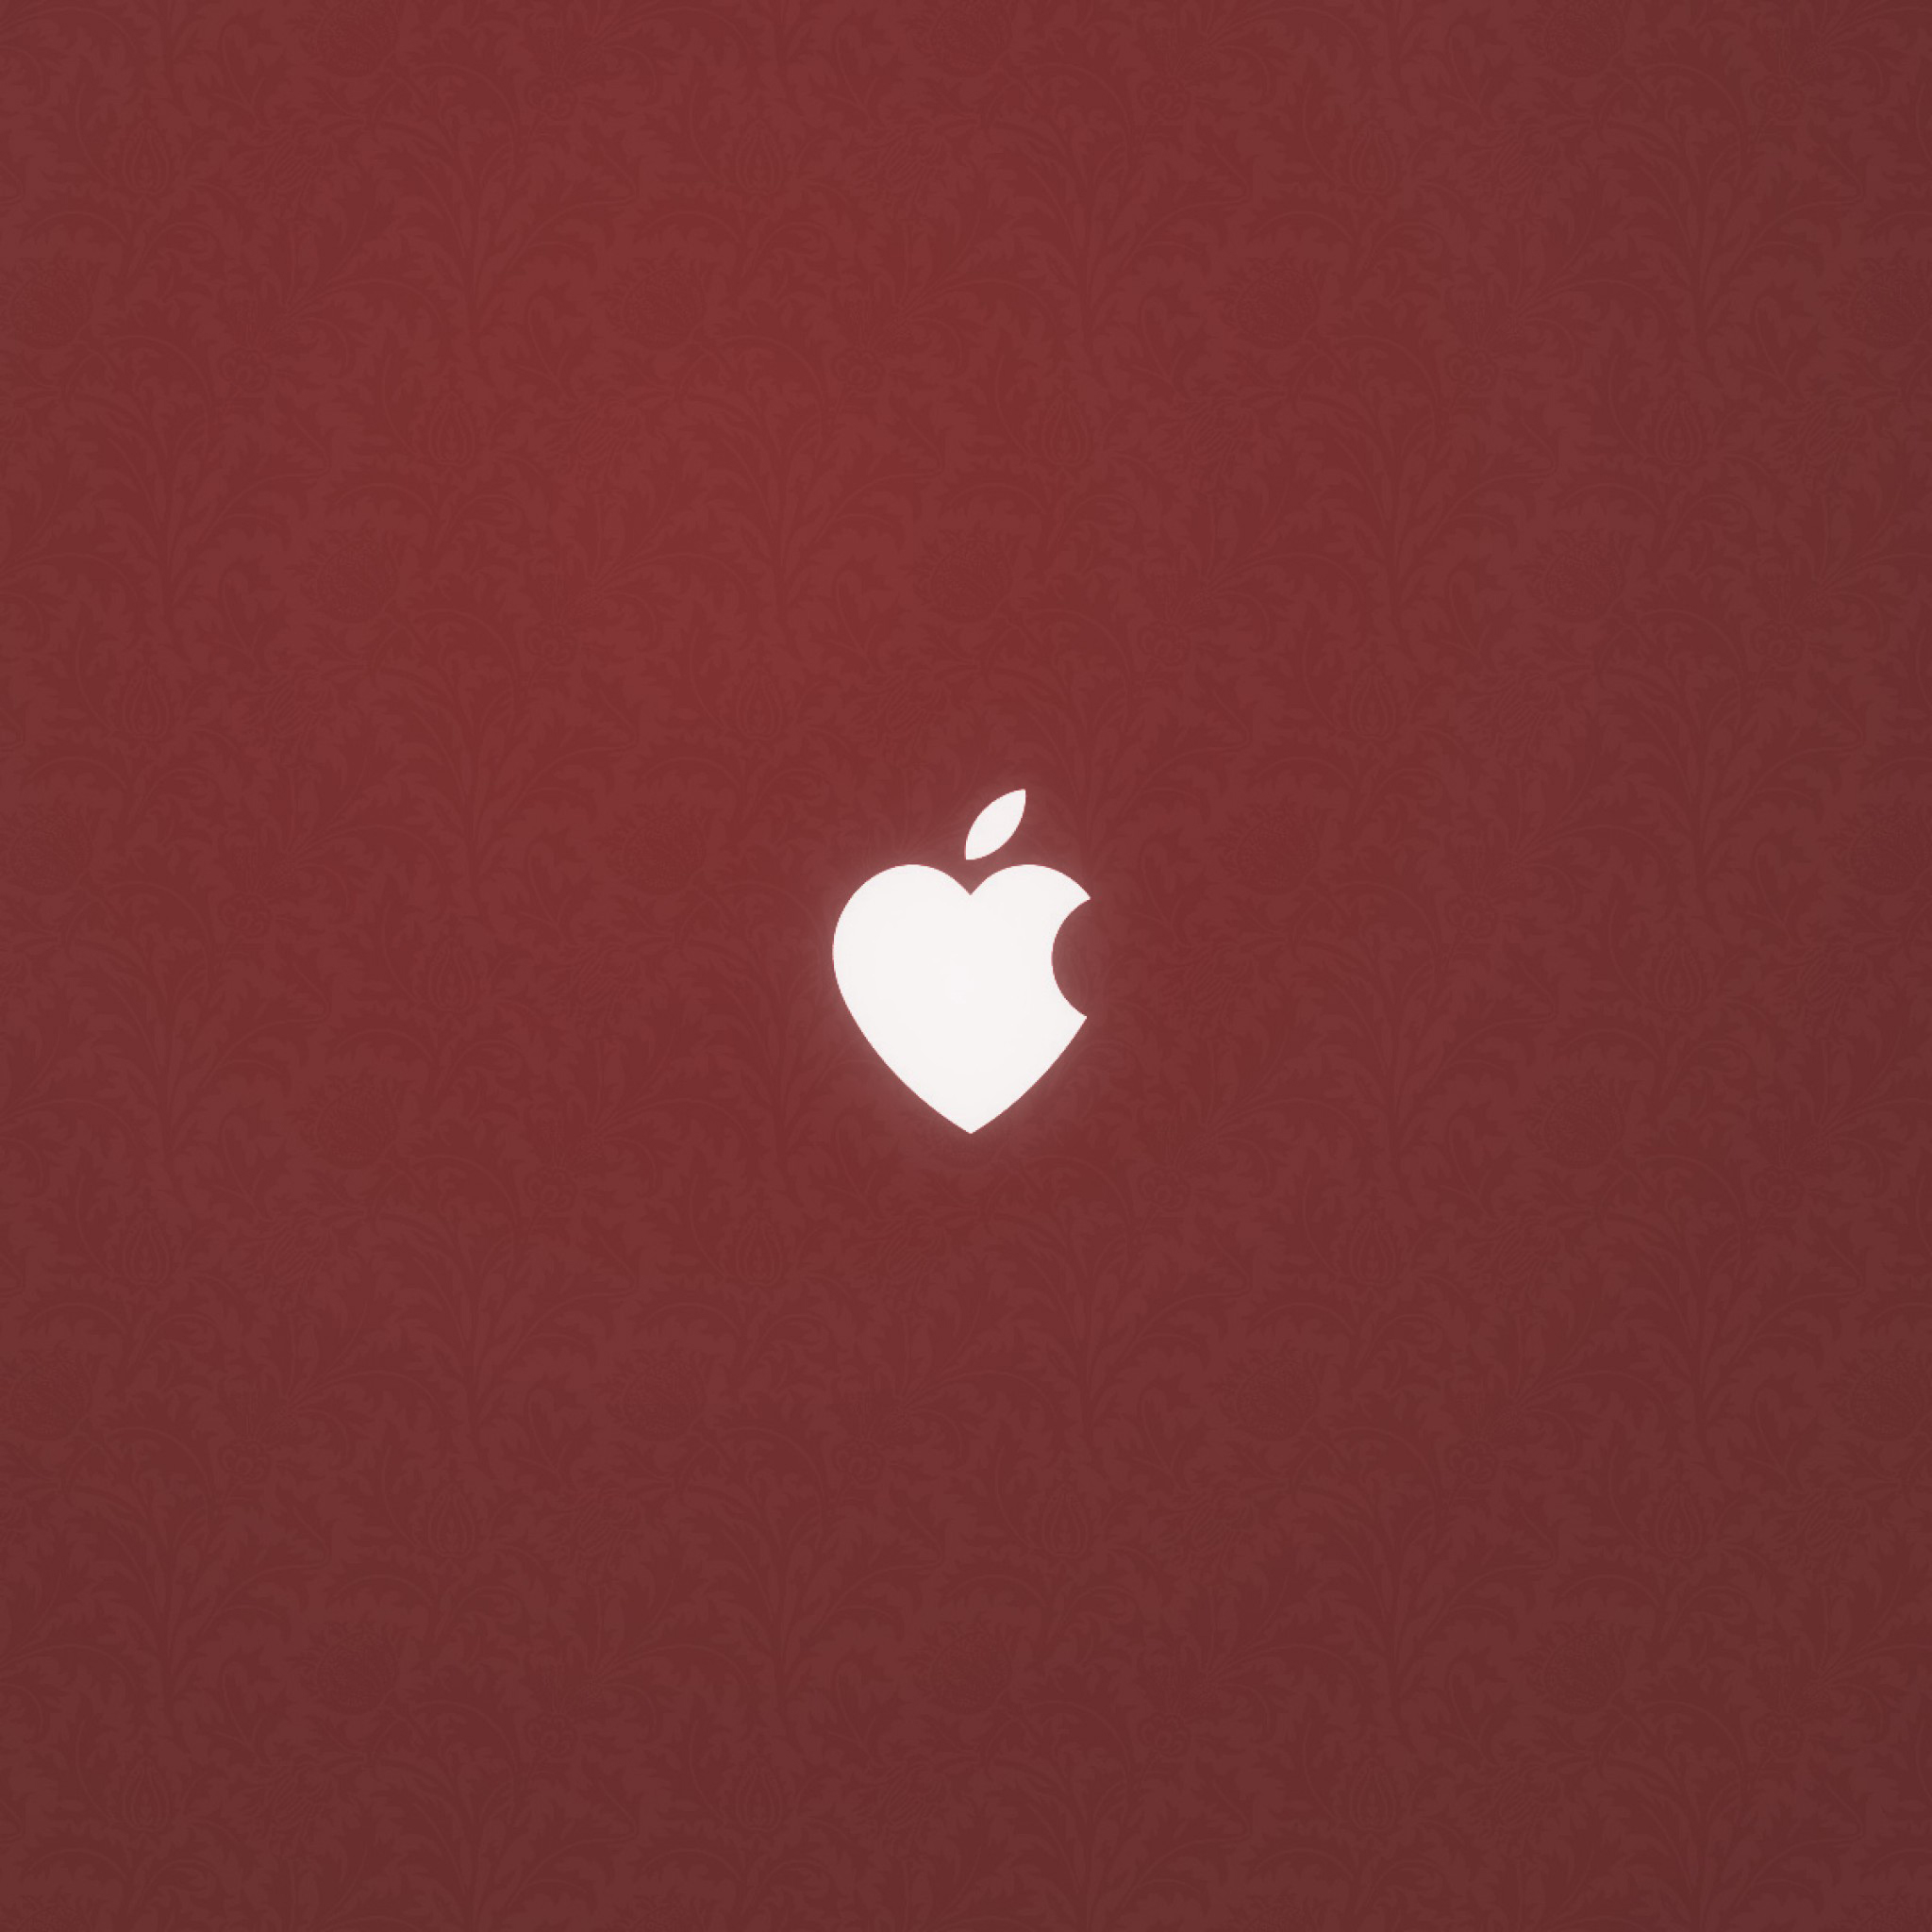 Apple Heart 3Wallpapers iPad Retina Apple Heart   iPad Retina